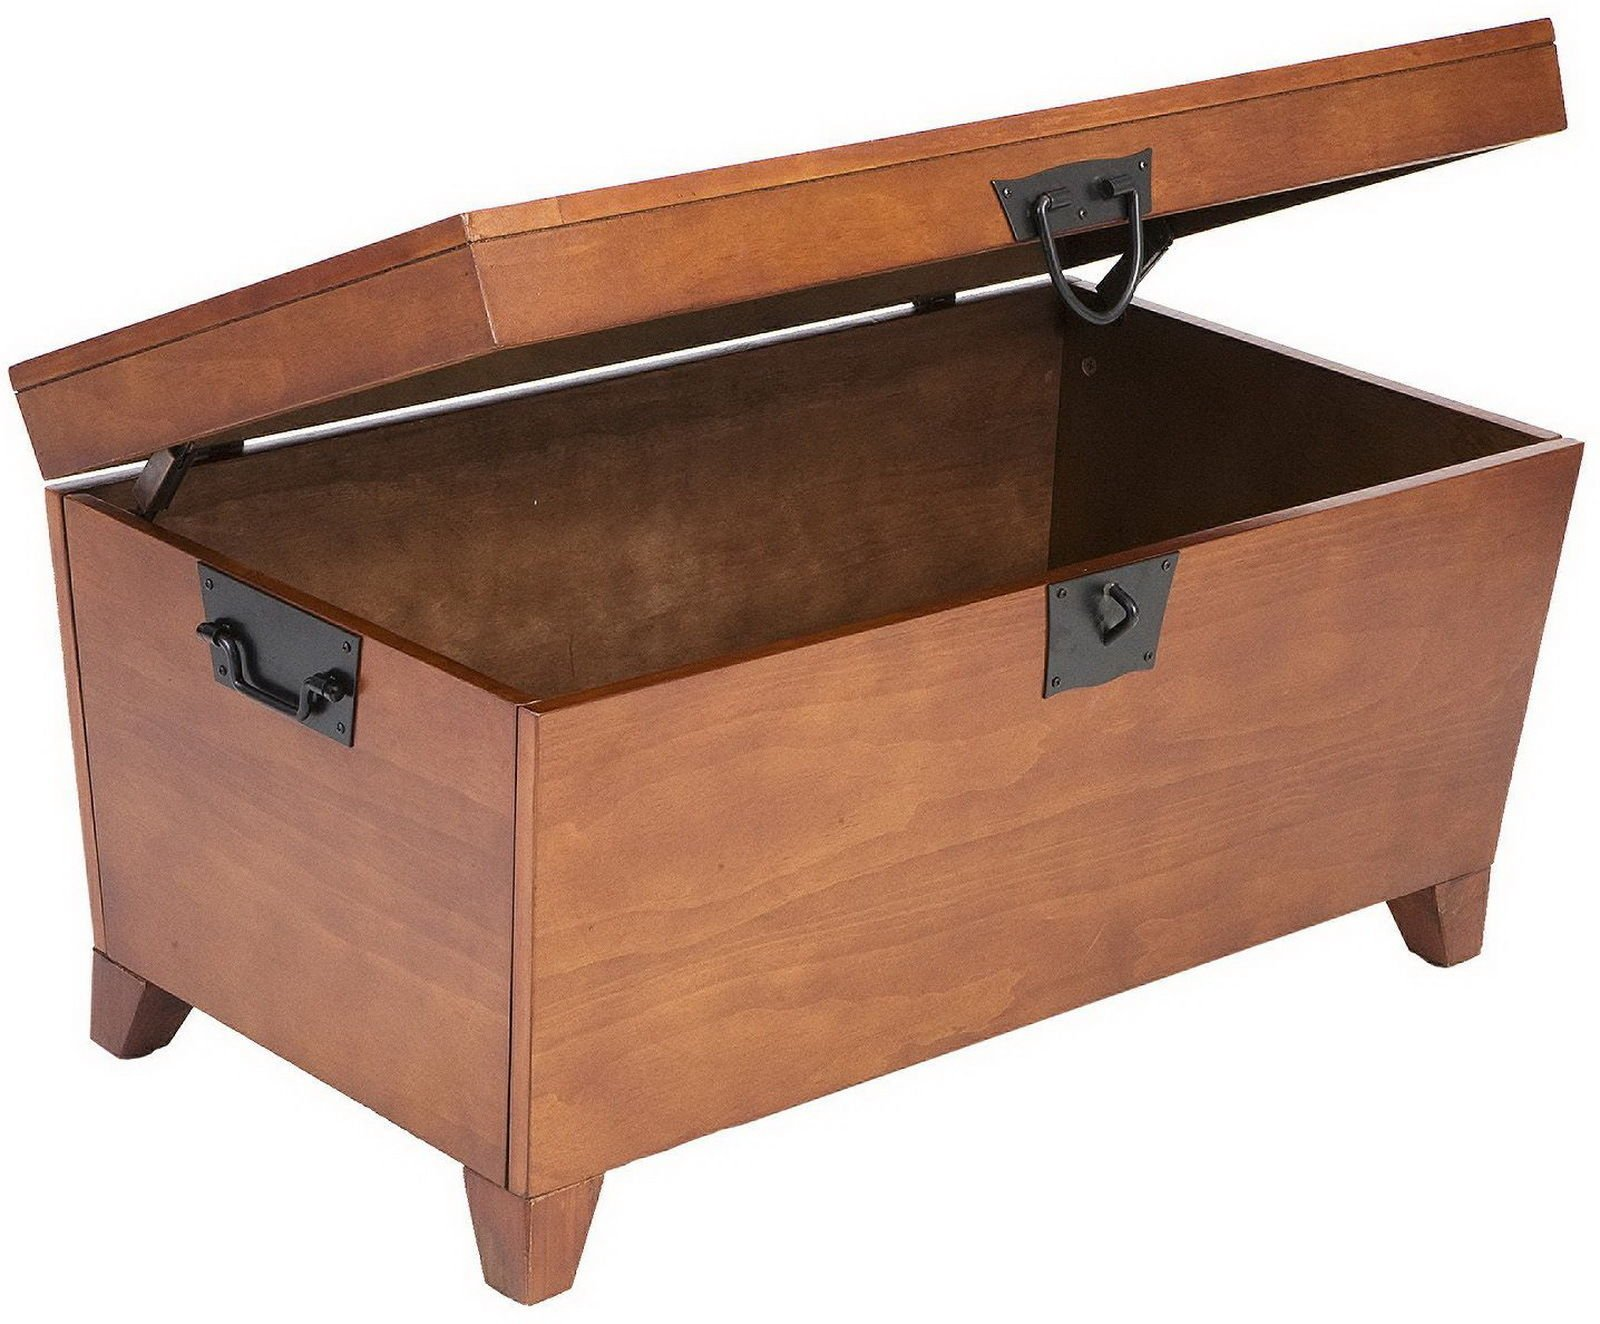 Stylish Wood Coffee Table with Hinged Lid Wooden Storage Trunk Chest Box